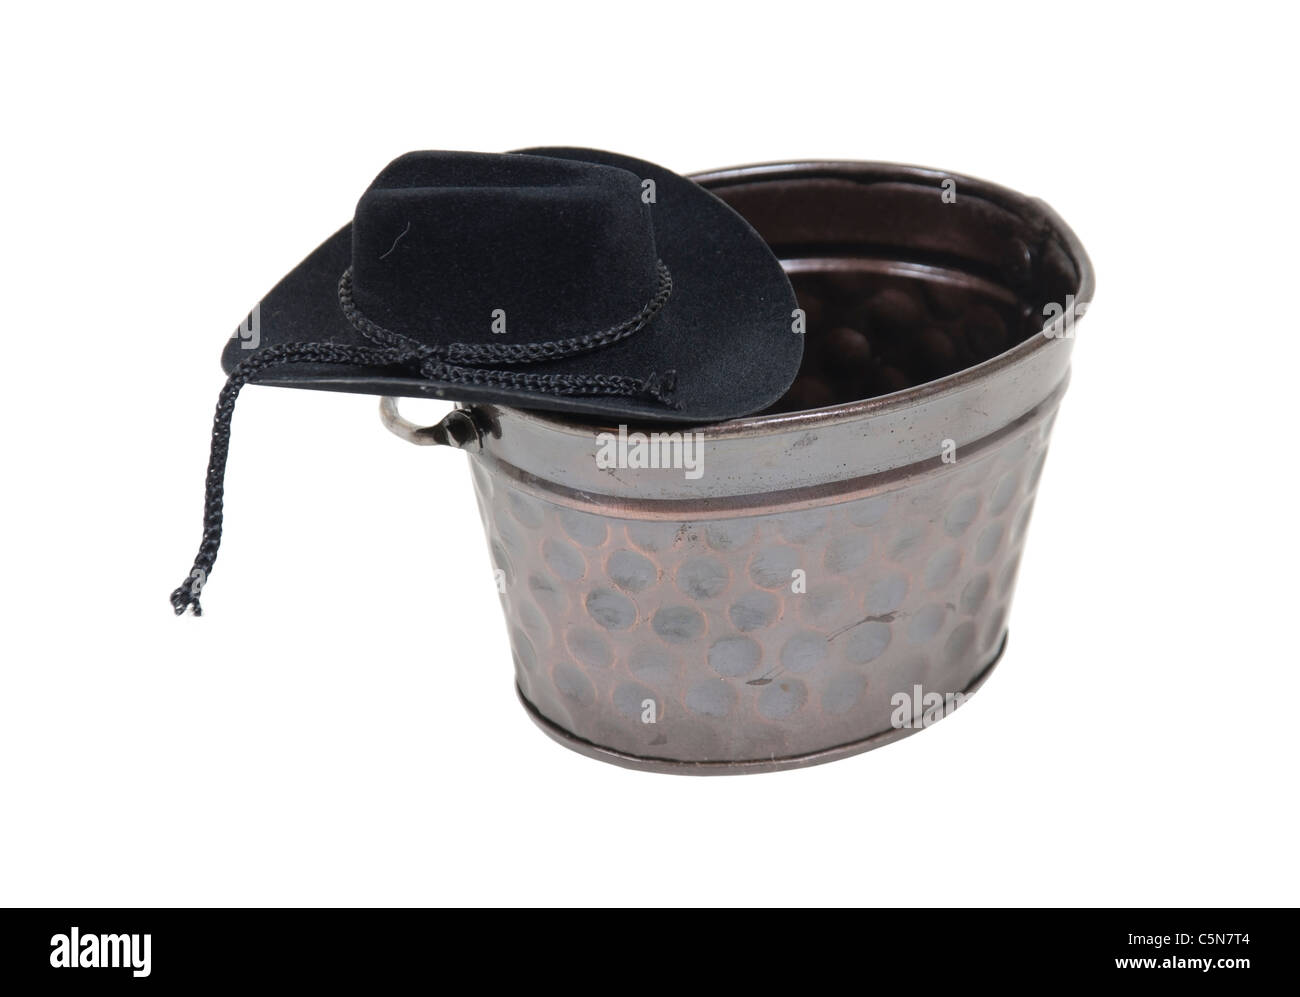 At the watering hole shown by a cowboy hat on a metal watering trough - path included - Stock Image